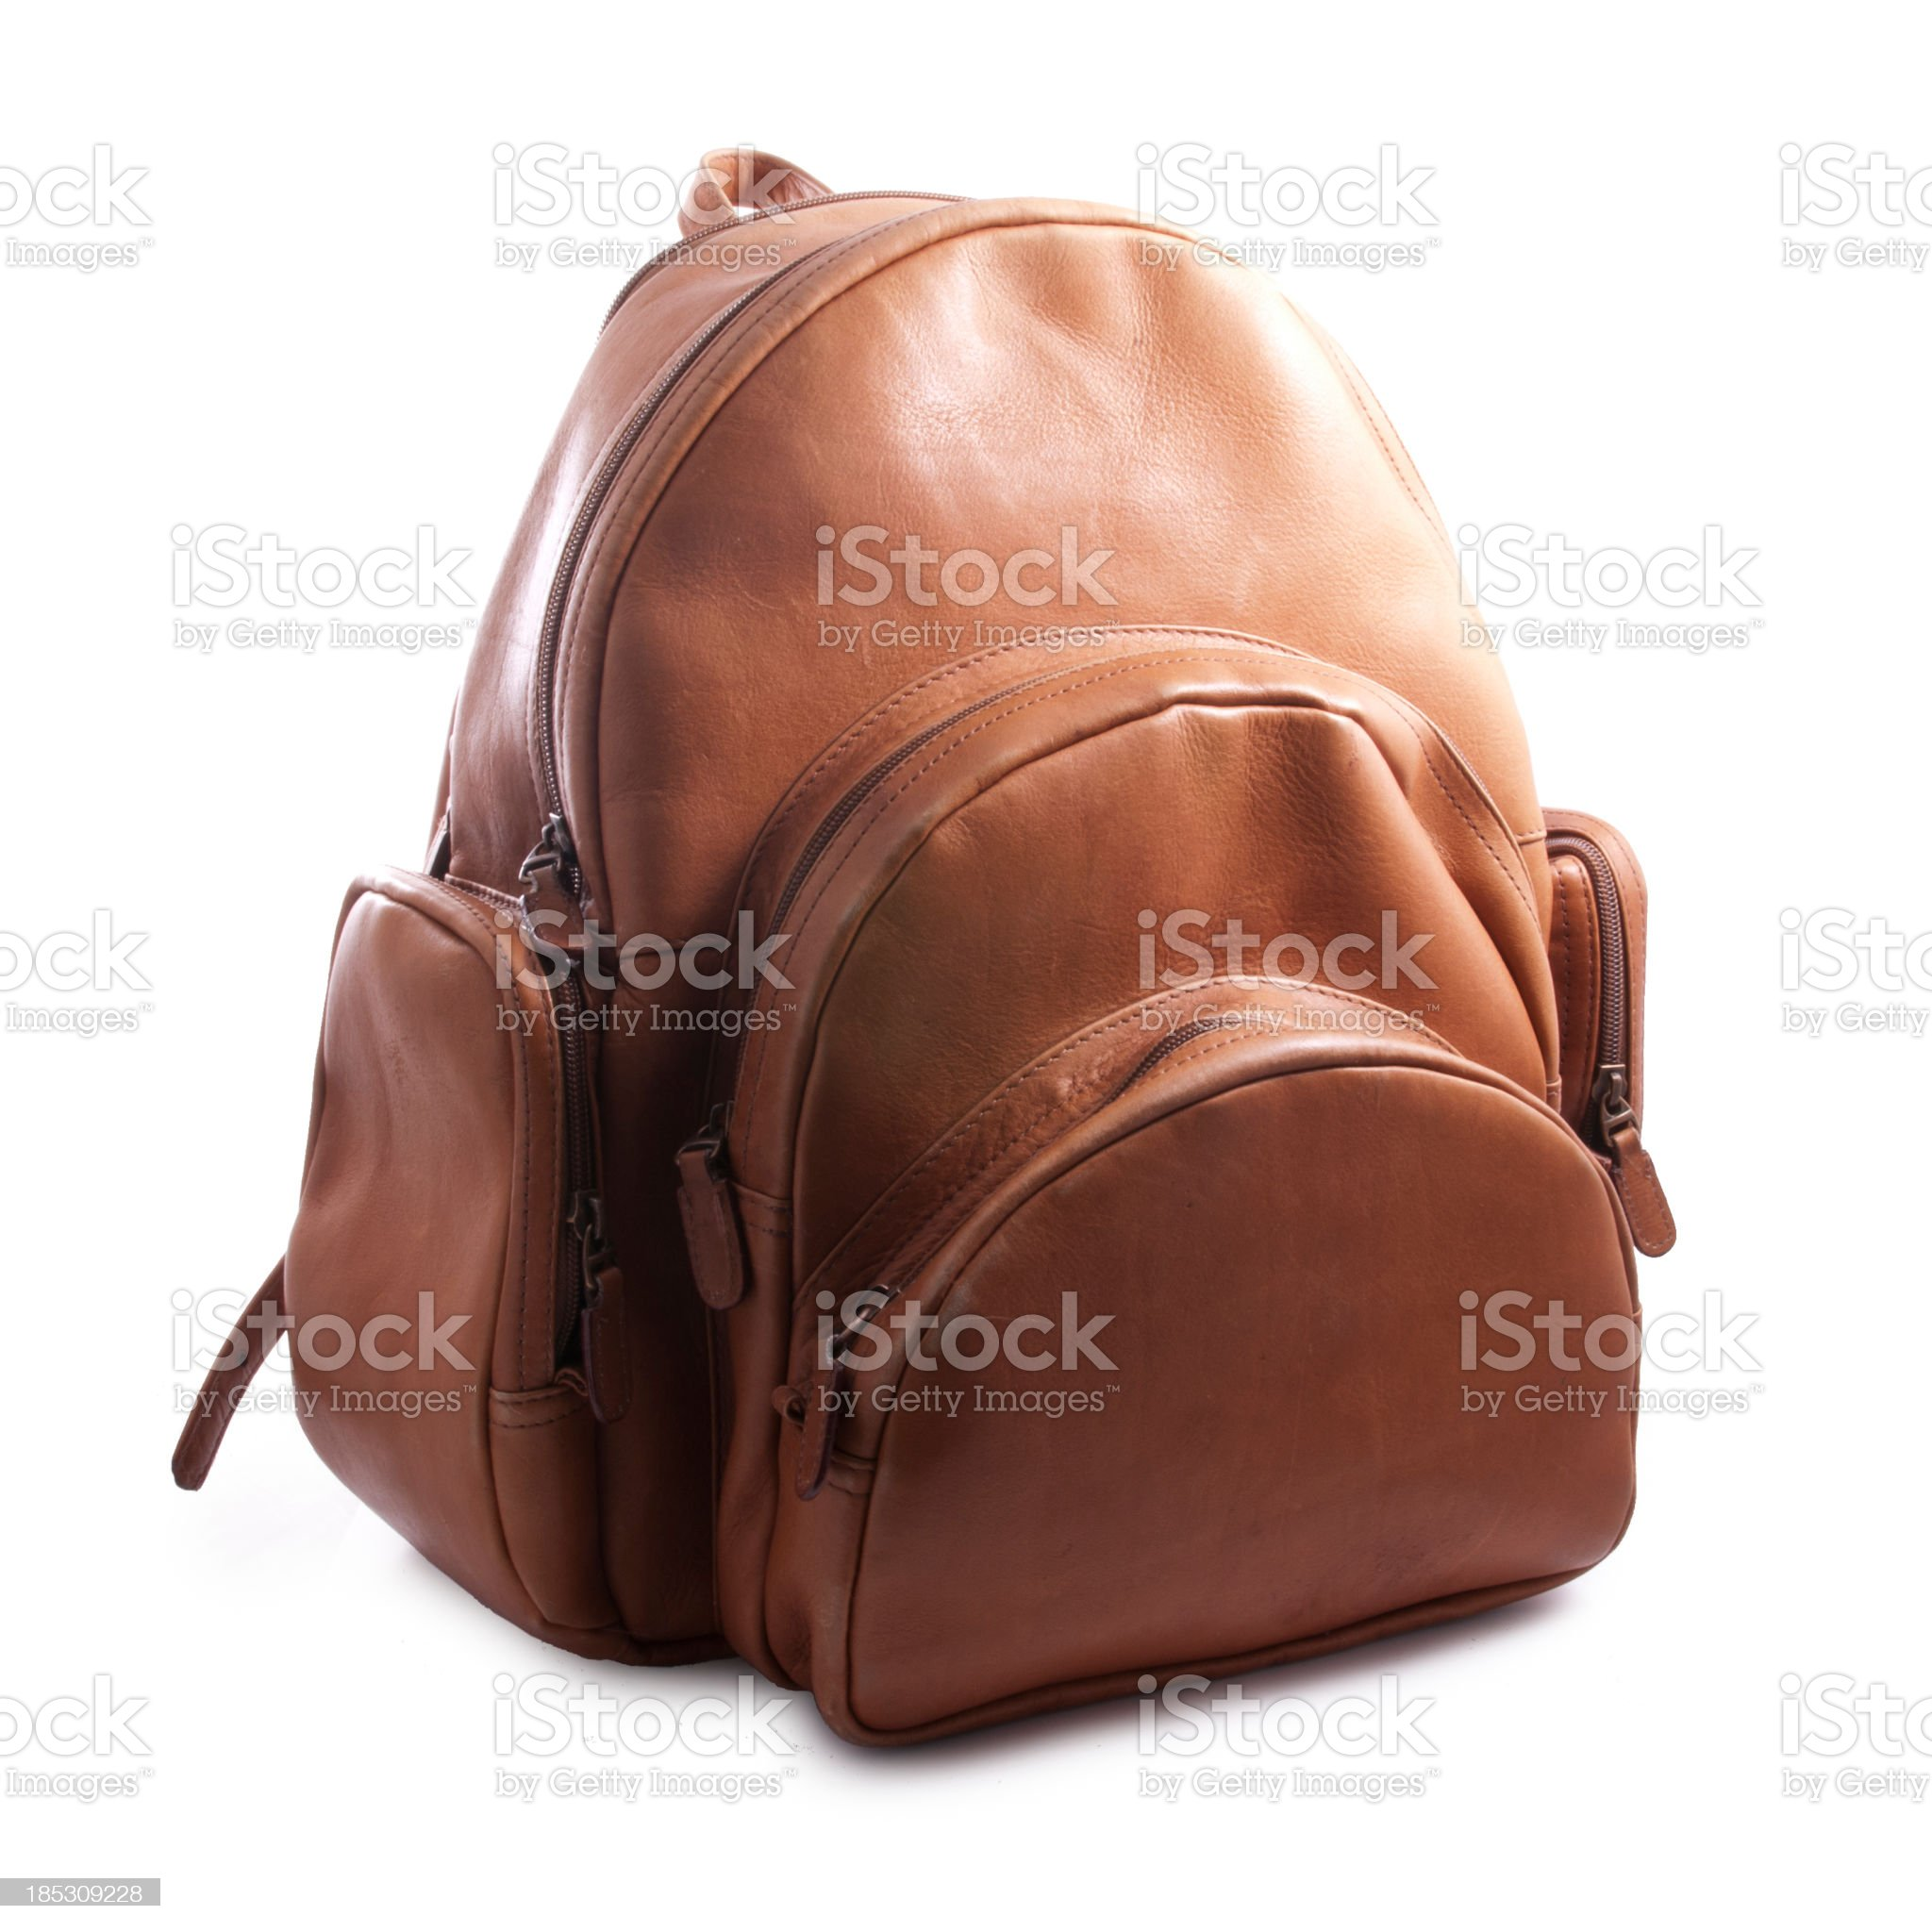 Leather Backpack royalty-free stock photo